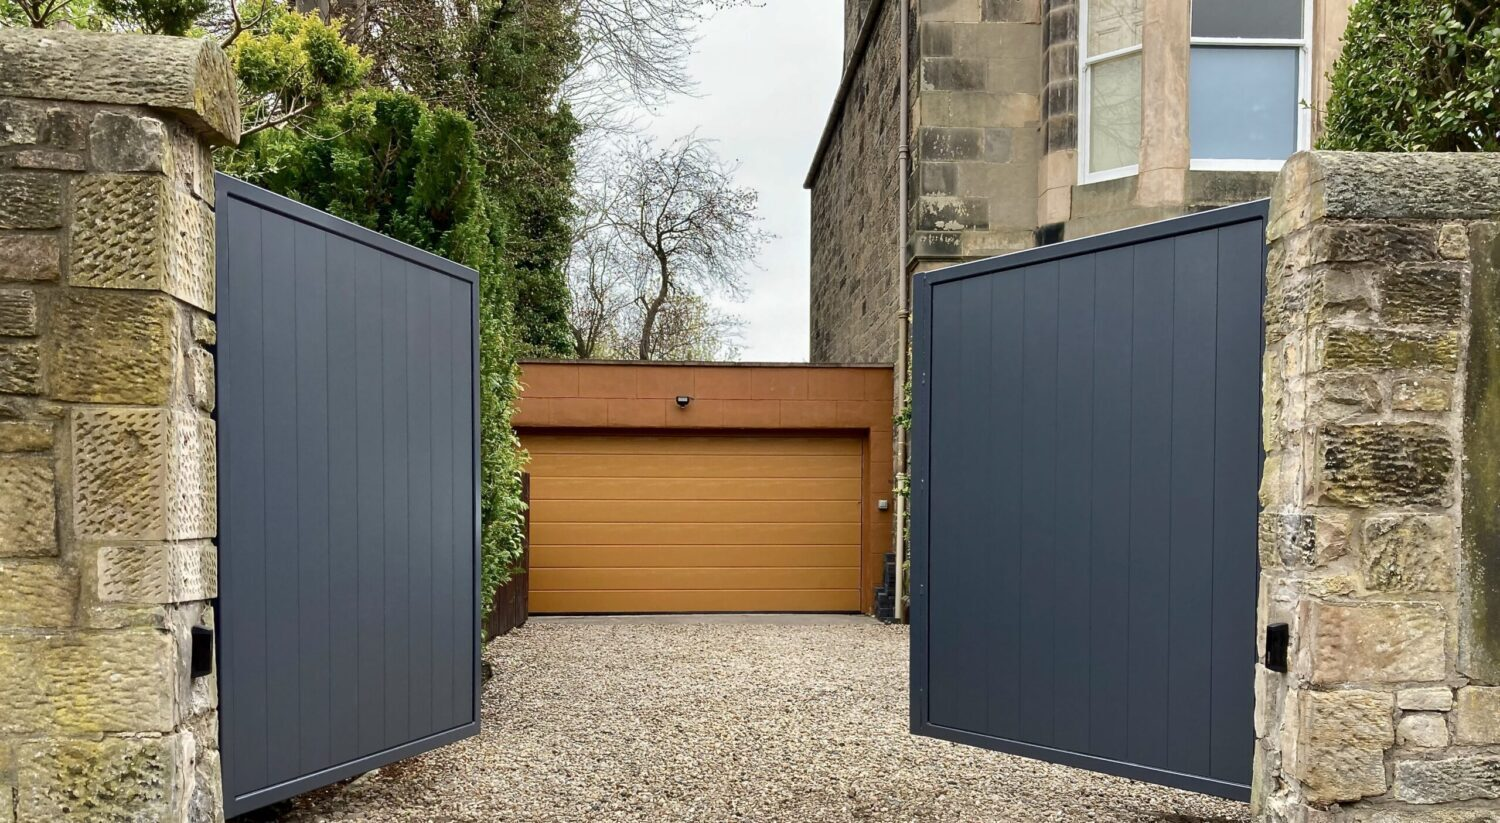 AES (SCOTLAND) LTD recently installed automatic aluminium driveway gates in Edinburgh.